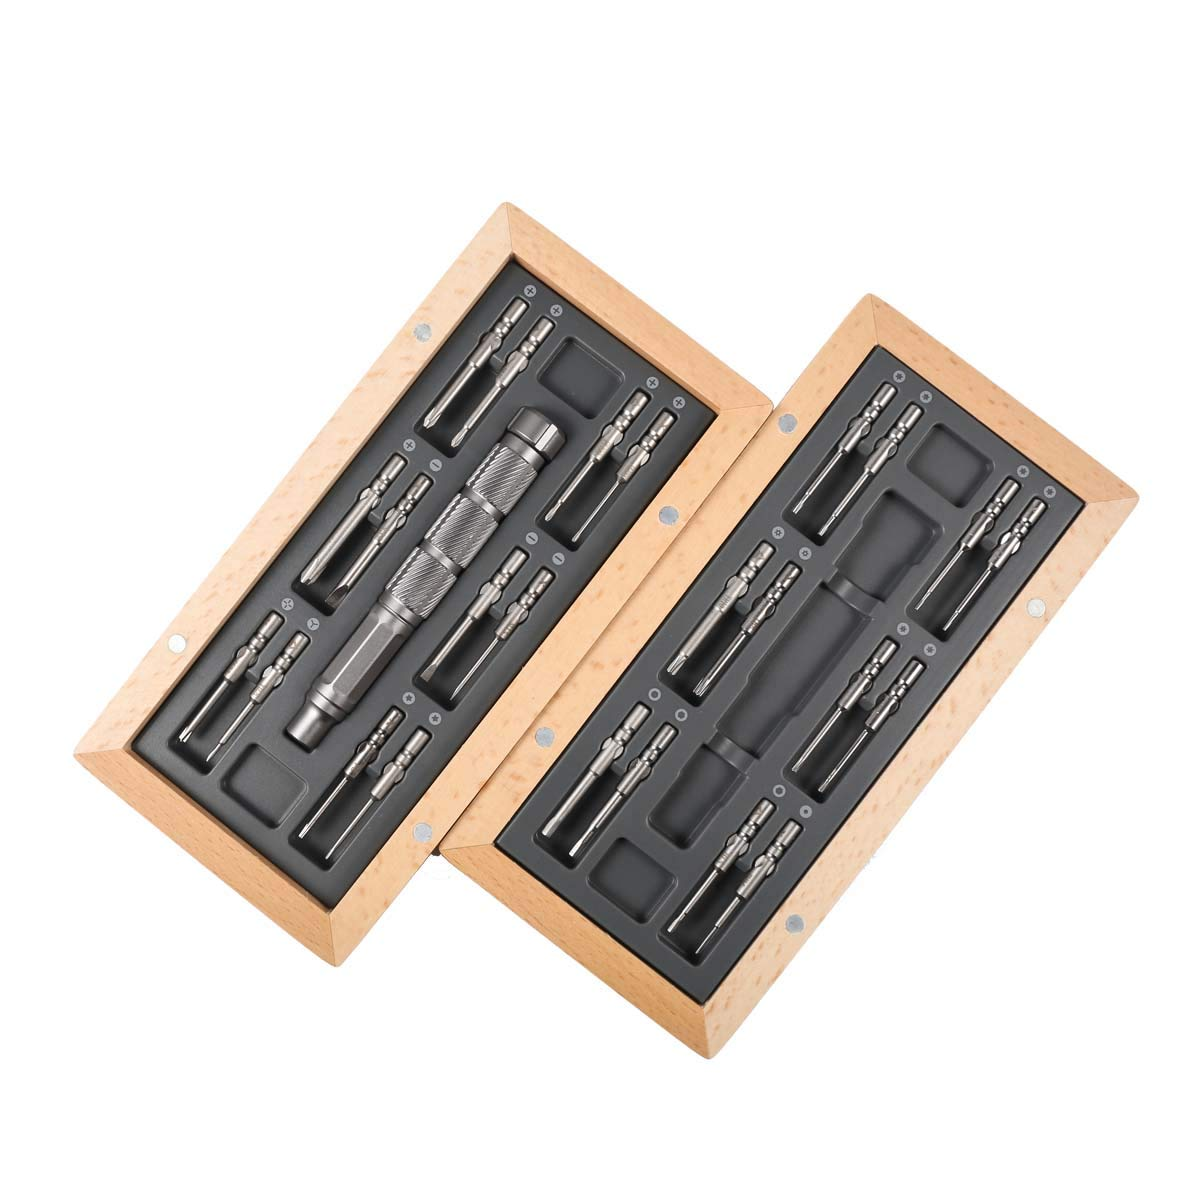 24-in-1 Precision Screwdriver Set